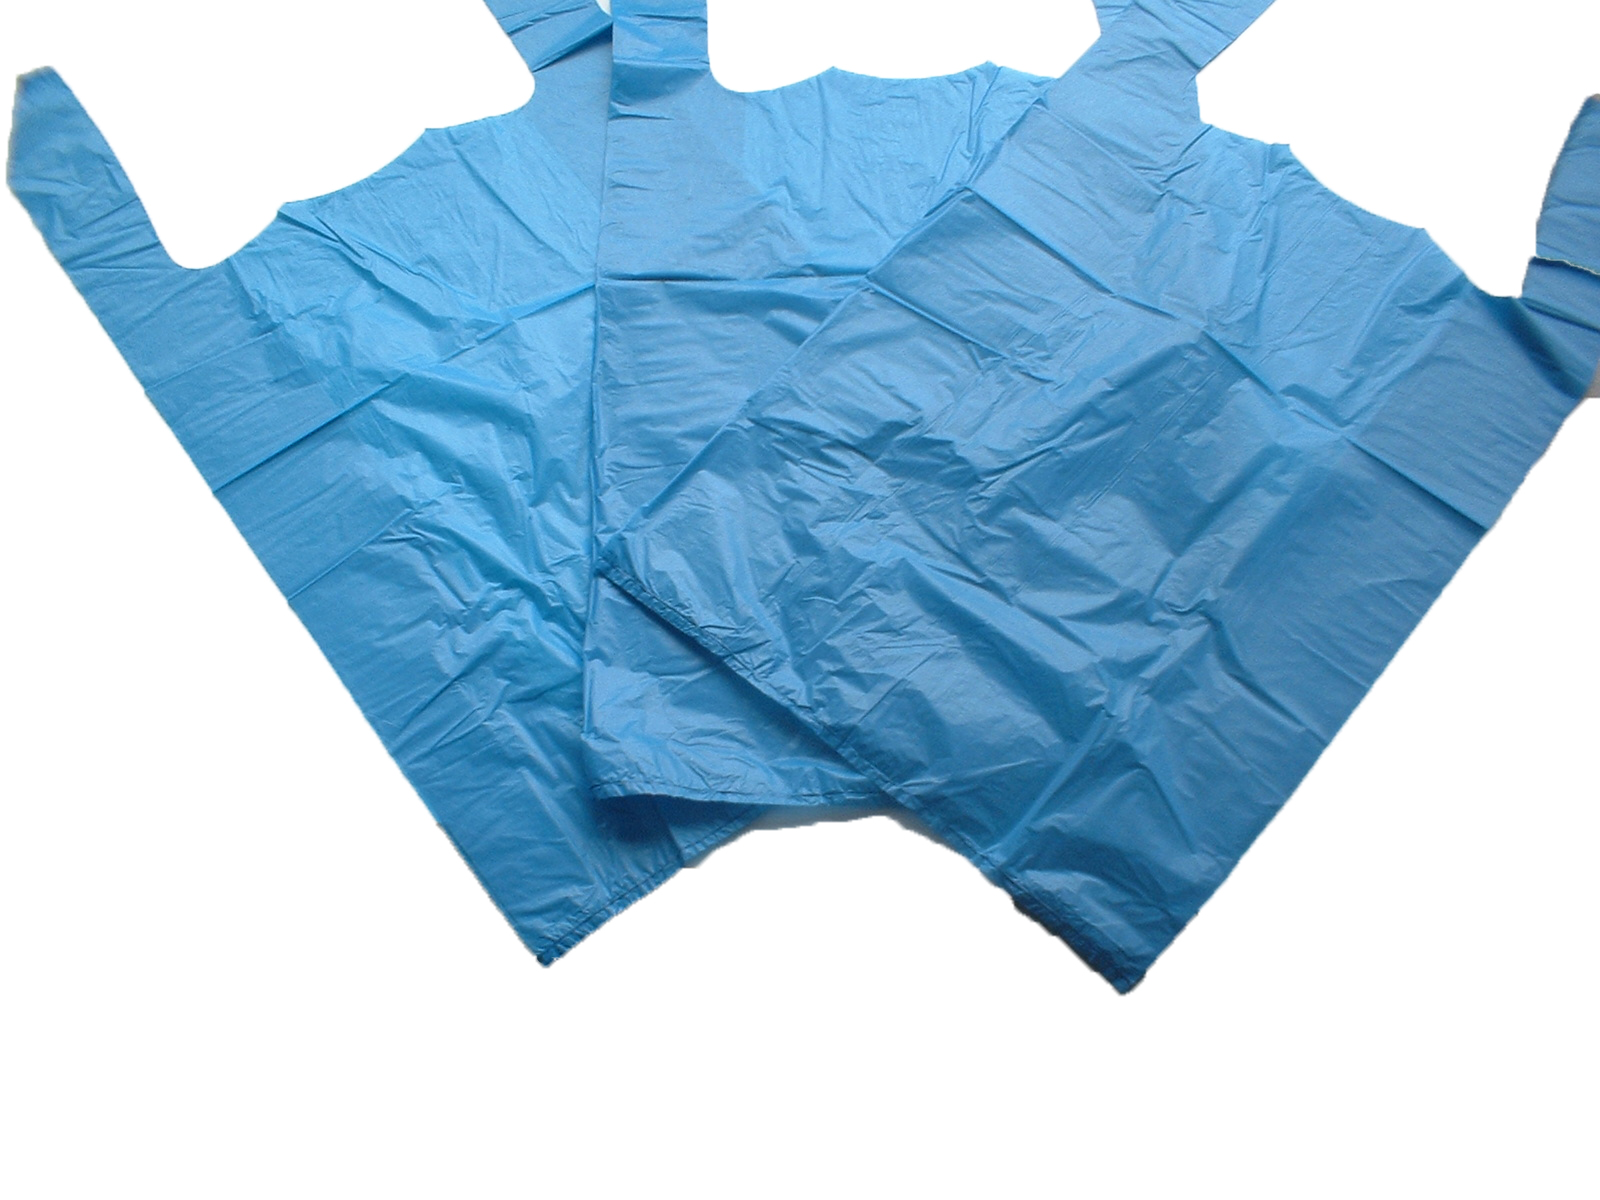 Blue Plastic Carrier Bags